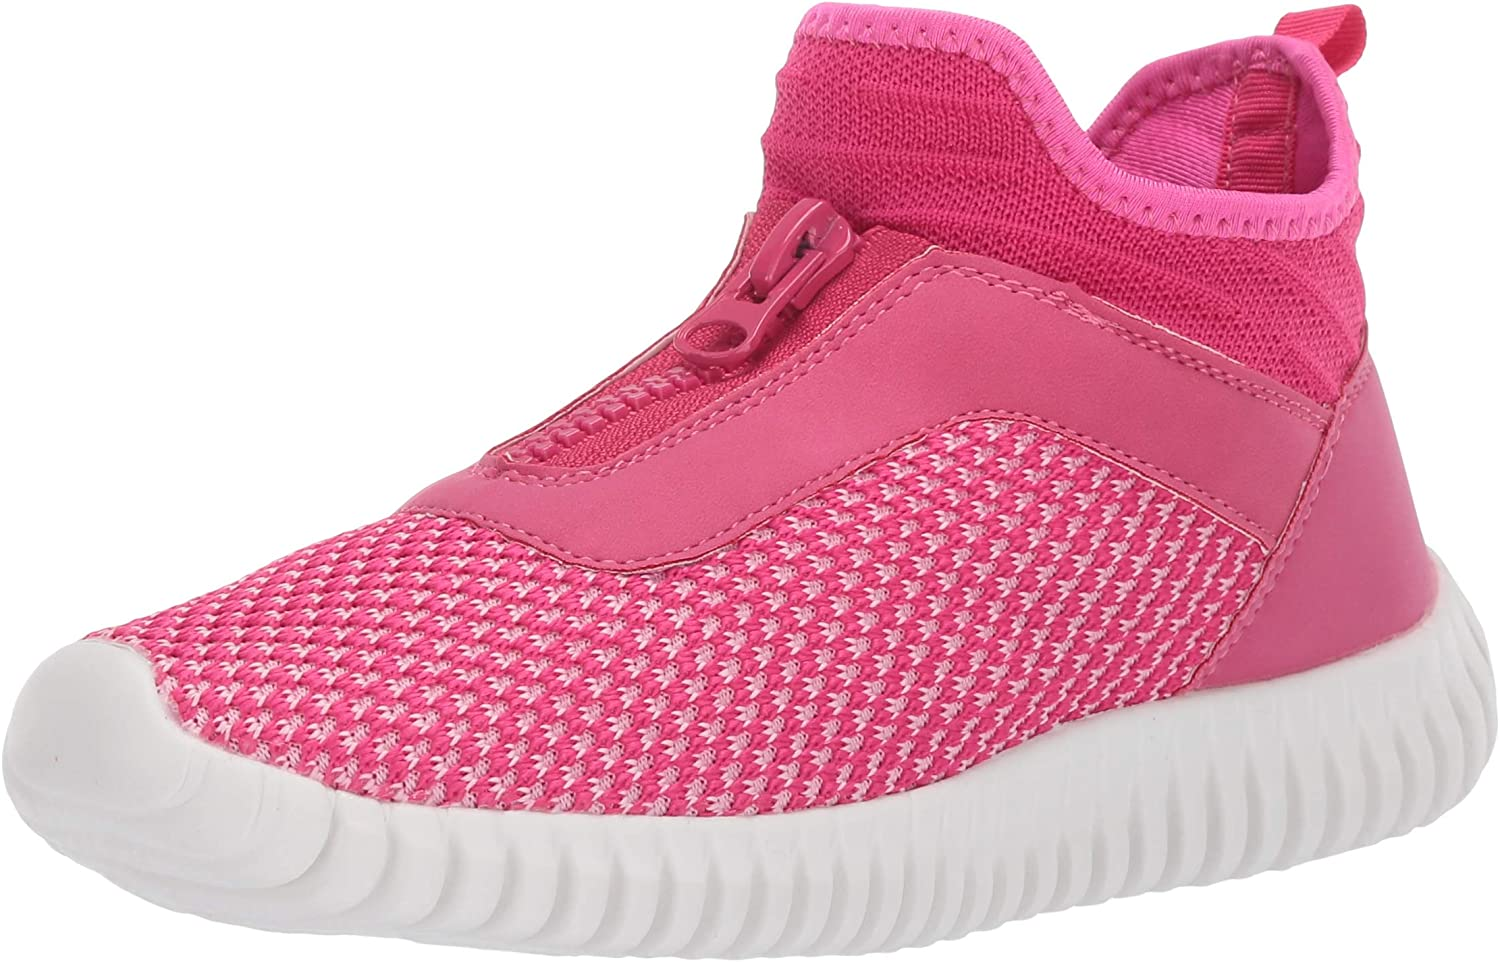 Dirty Laundry Women's Fashion Sneaker